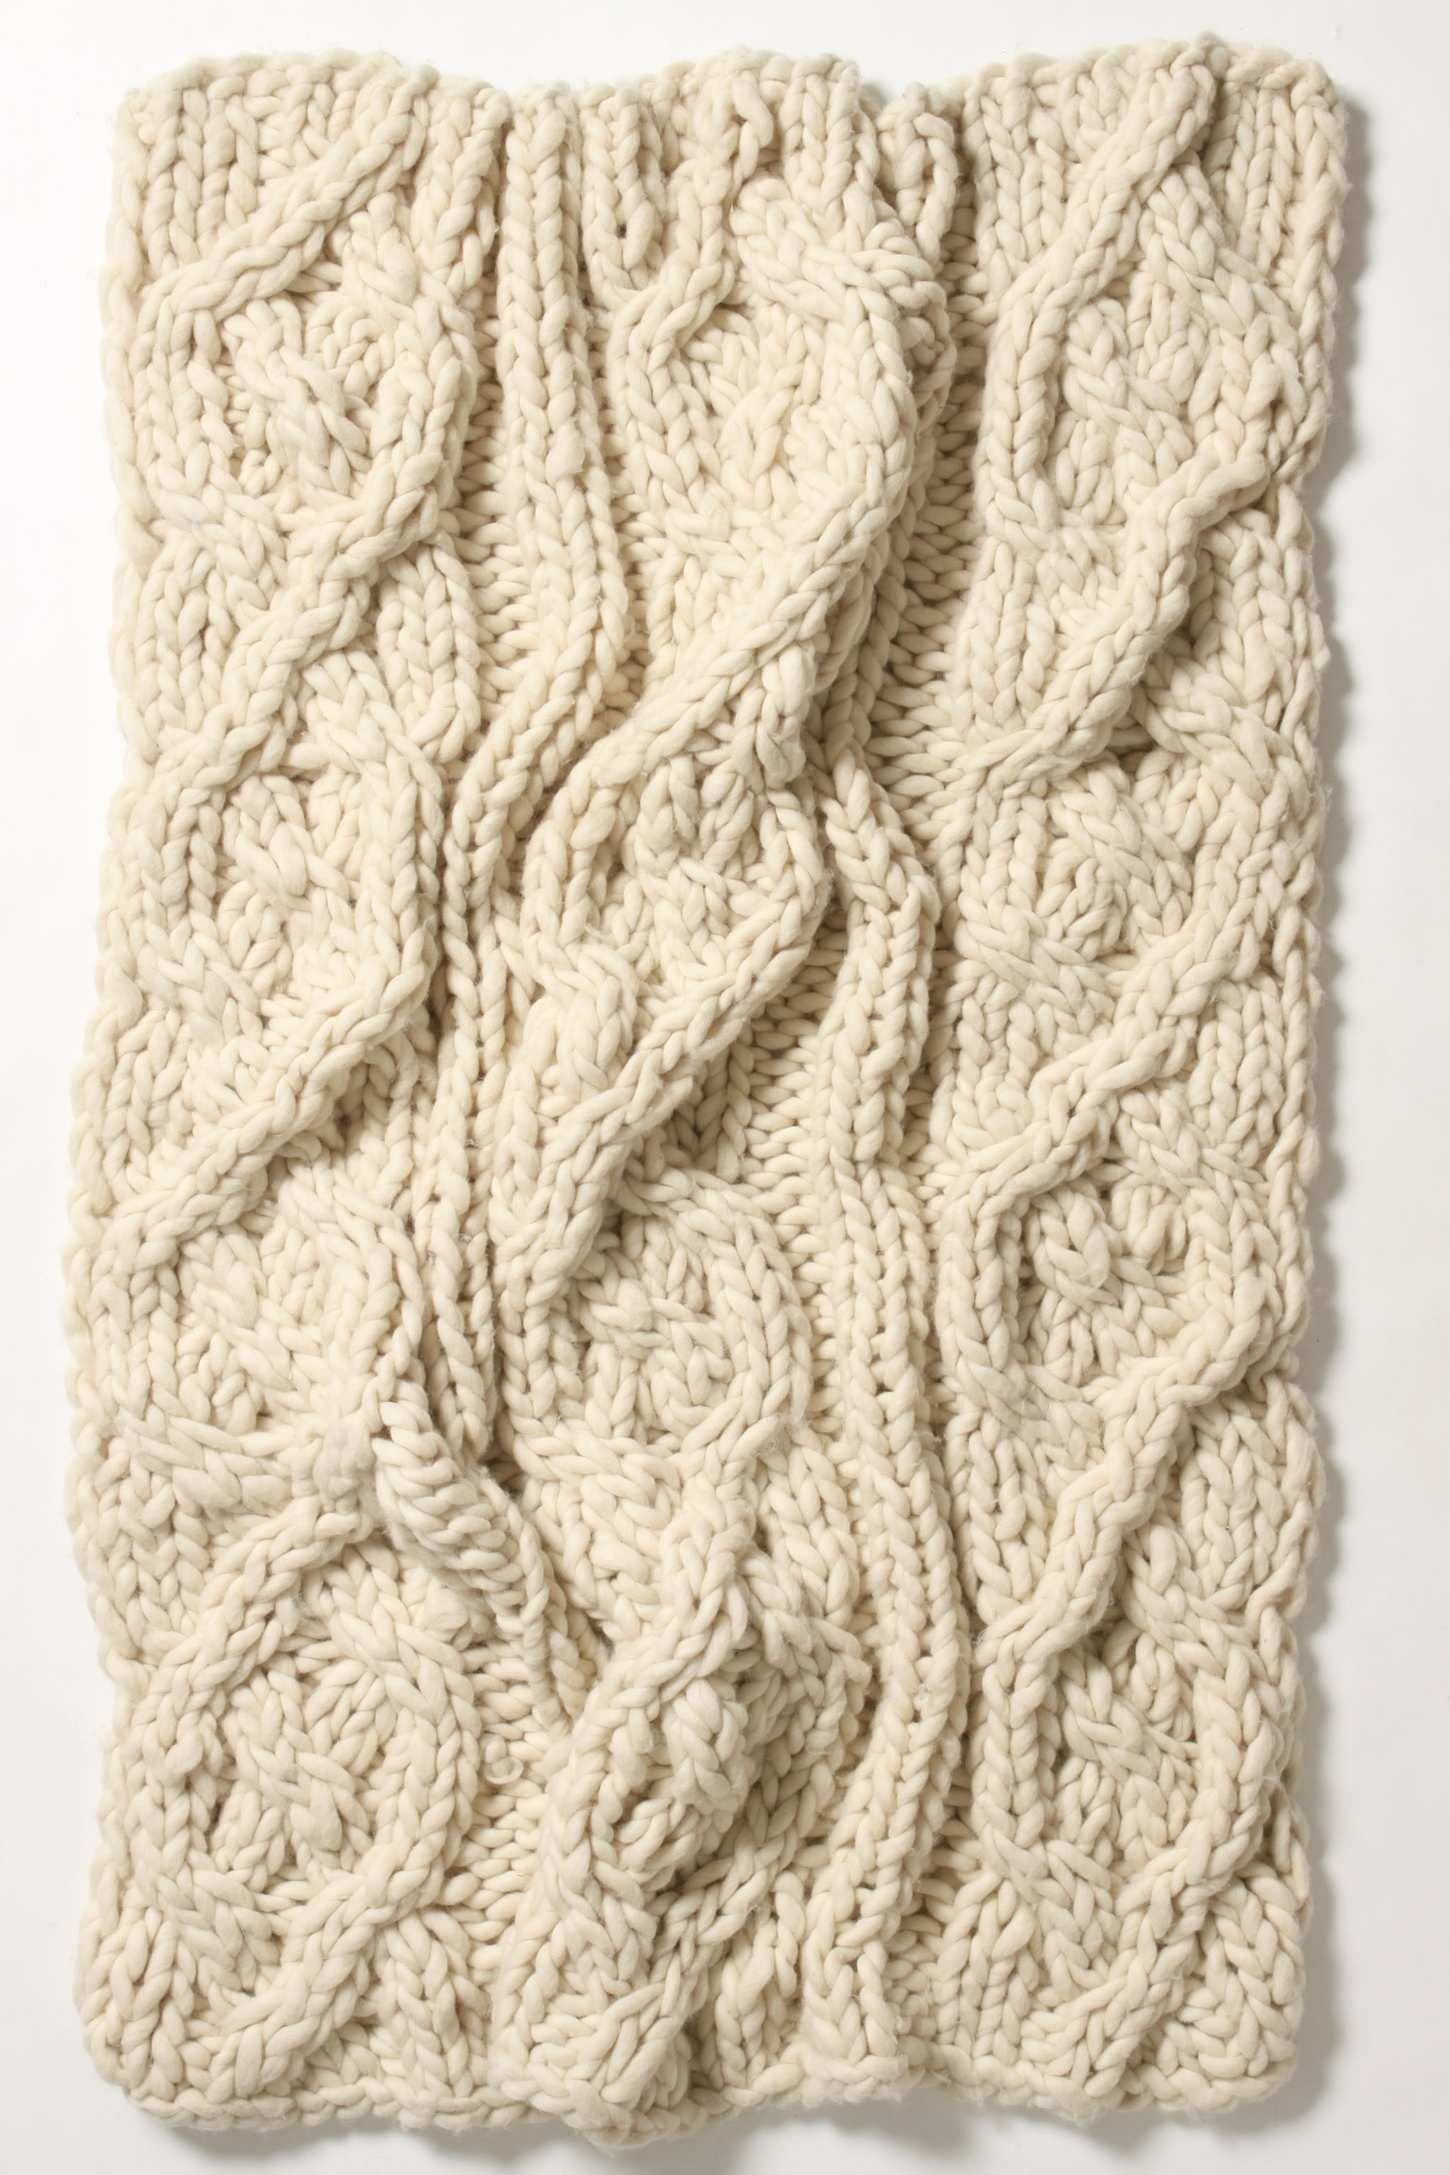 cable knit | Knitting pattern | Pinterest